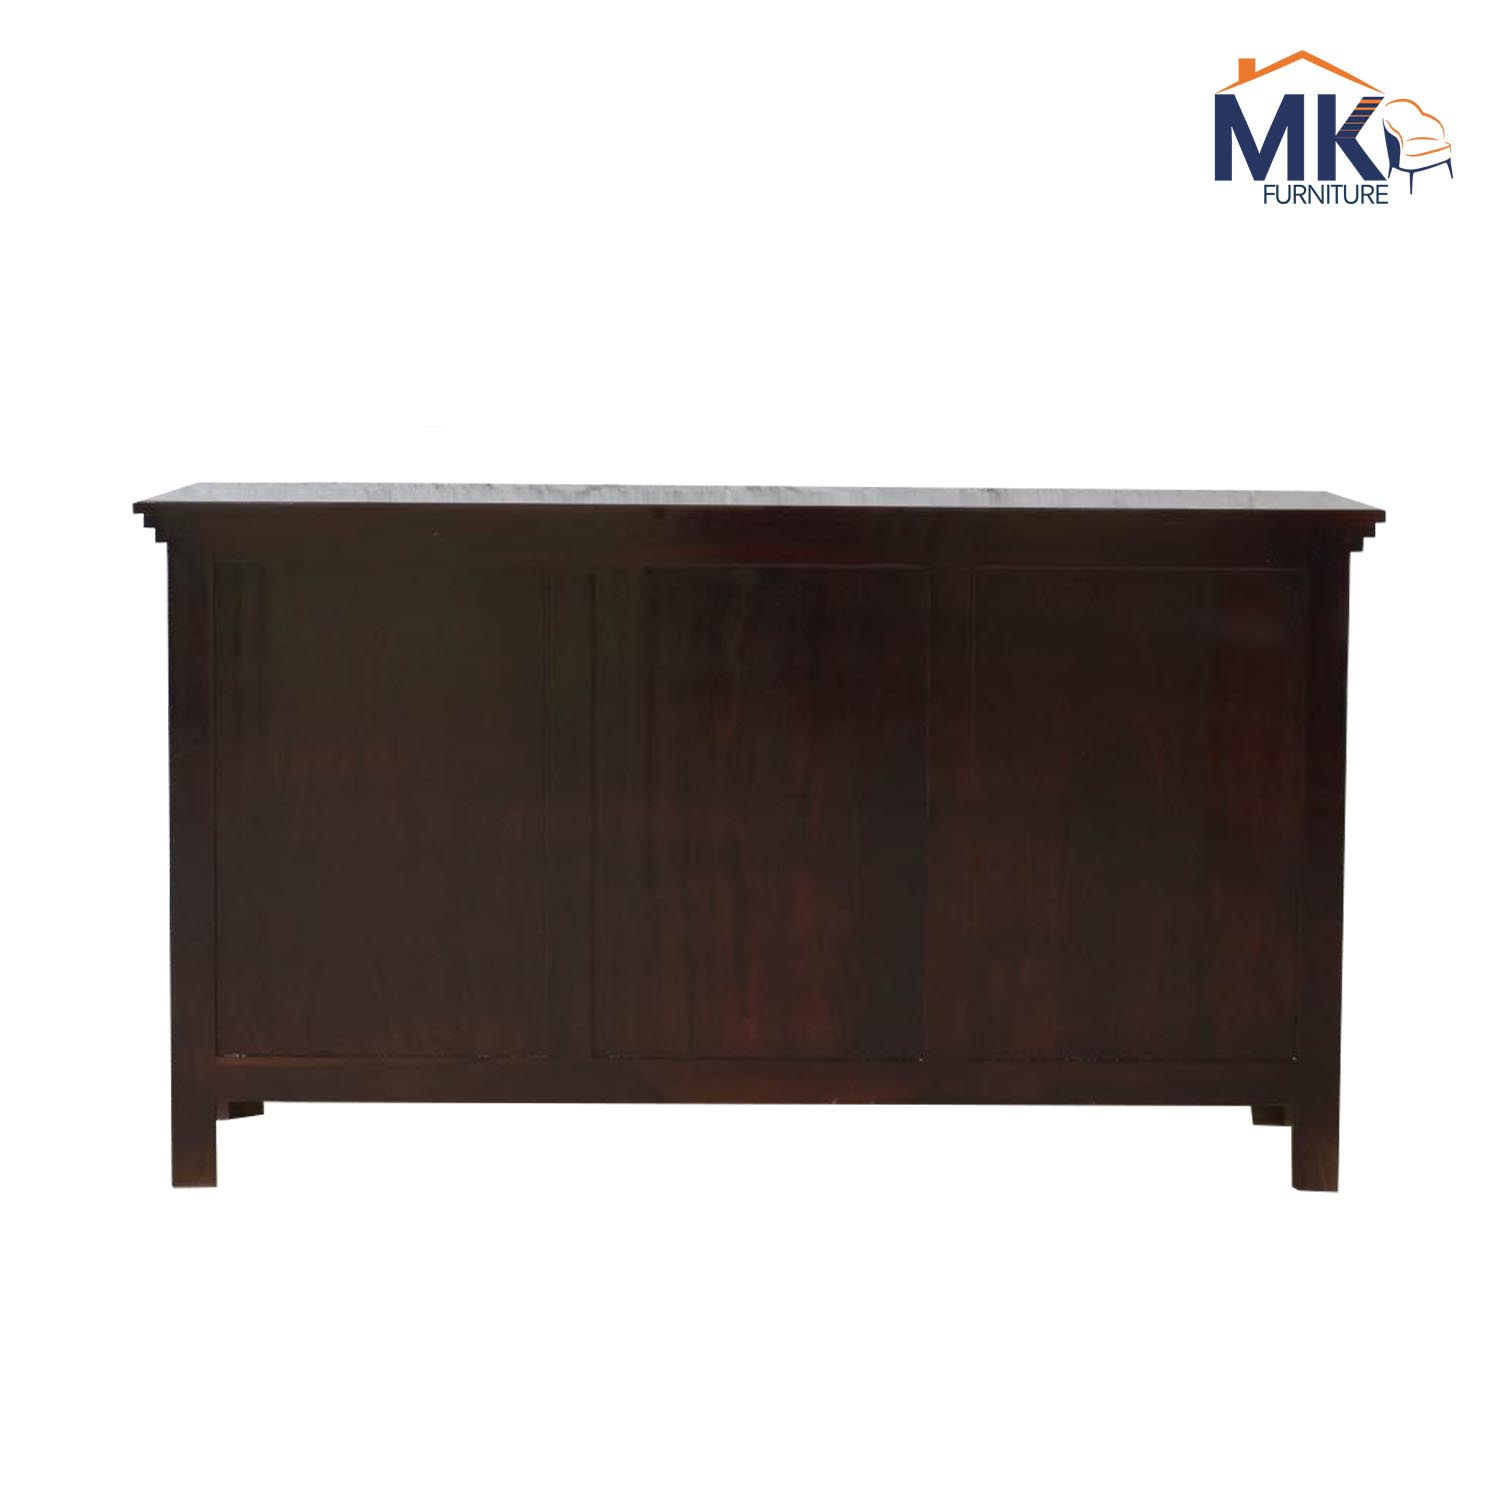 Garry  Solid Wood Chest Of Drawers  In Walnut Polish